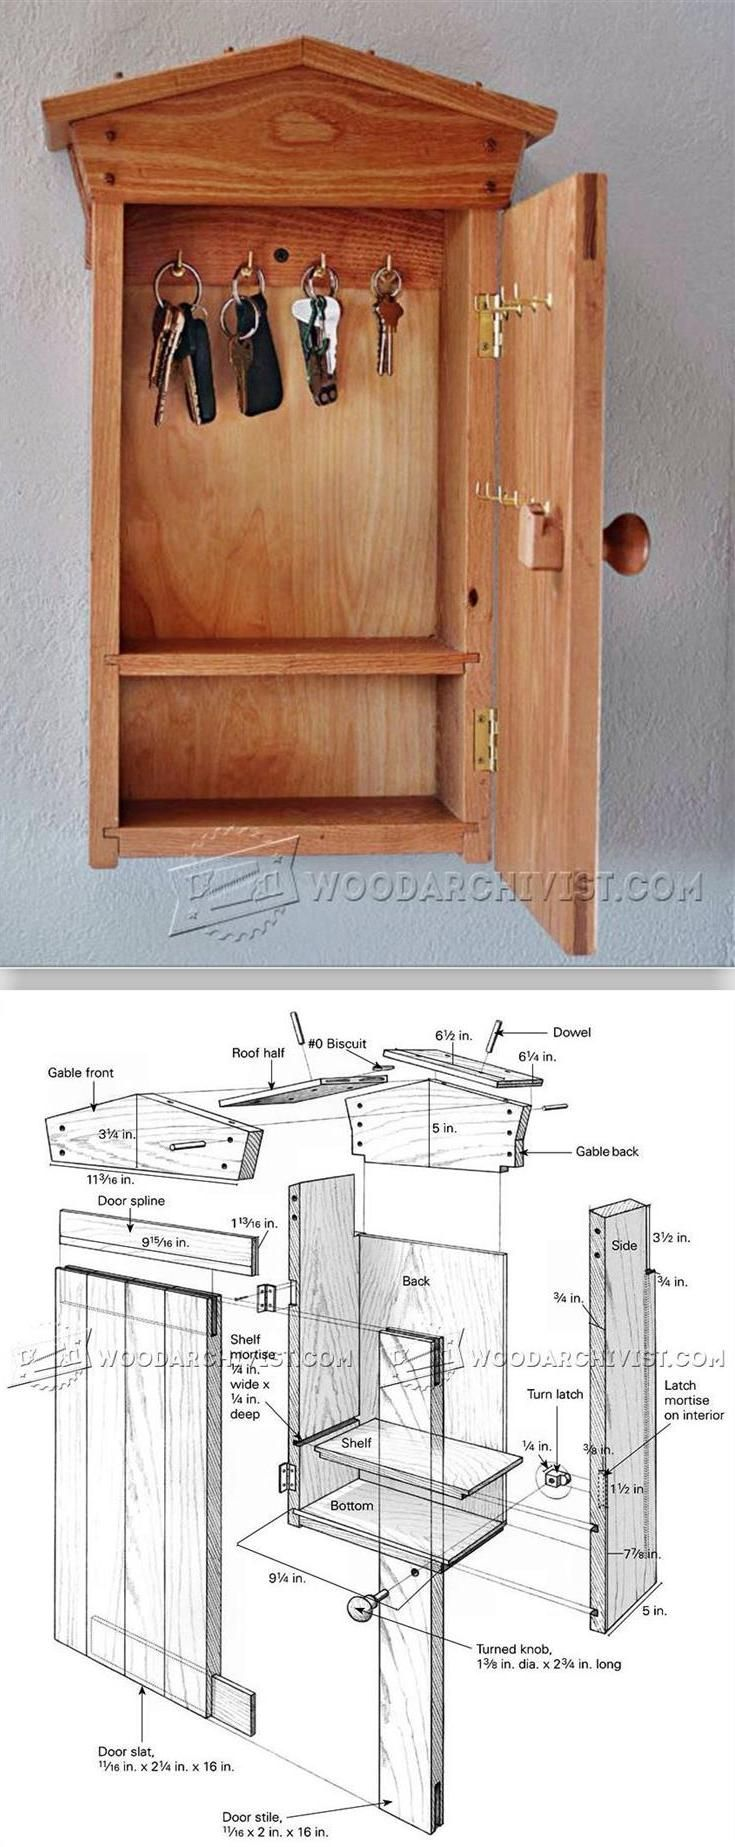 Woodworking Projects Plans: 25+ Best Ideas About Woodworking Projects On Pinterest